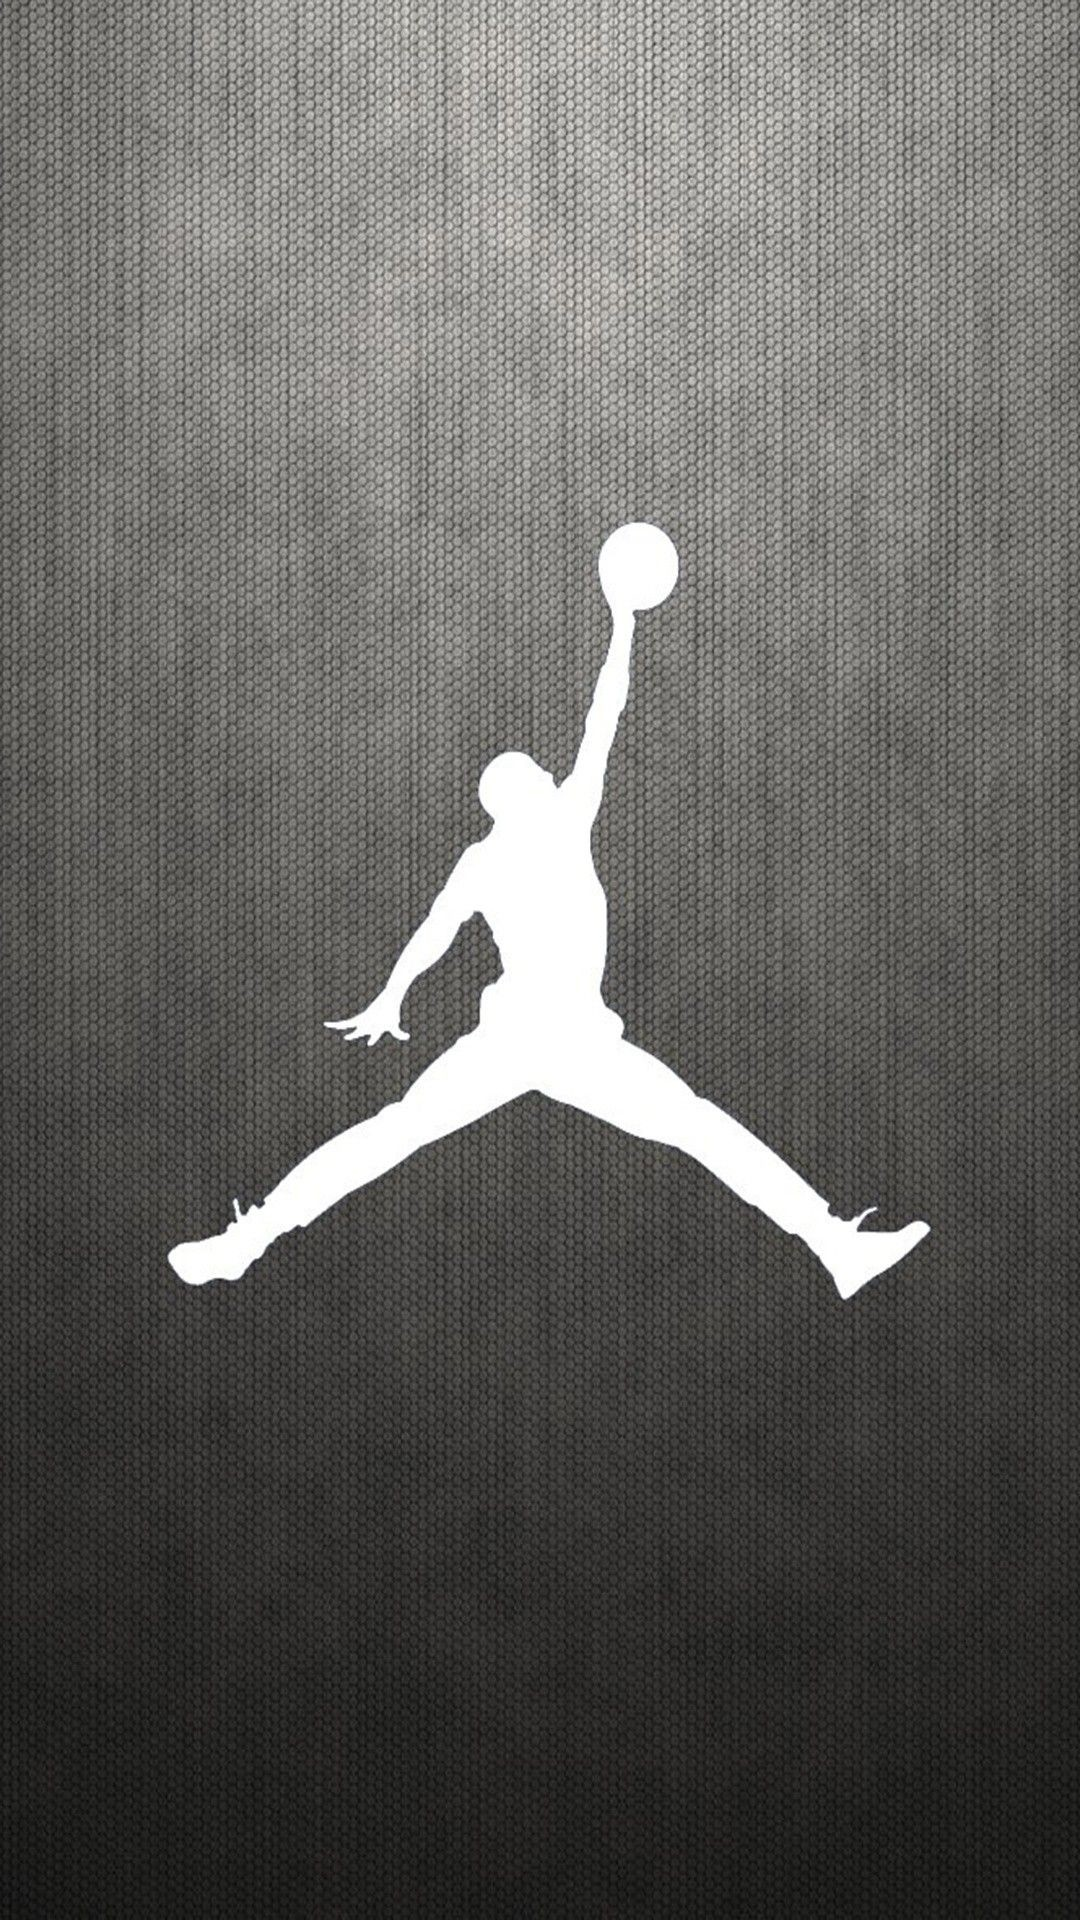 Basketball wallpaper for iPhone